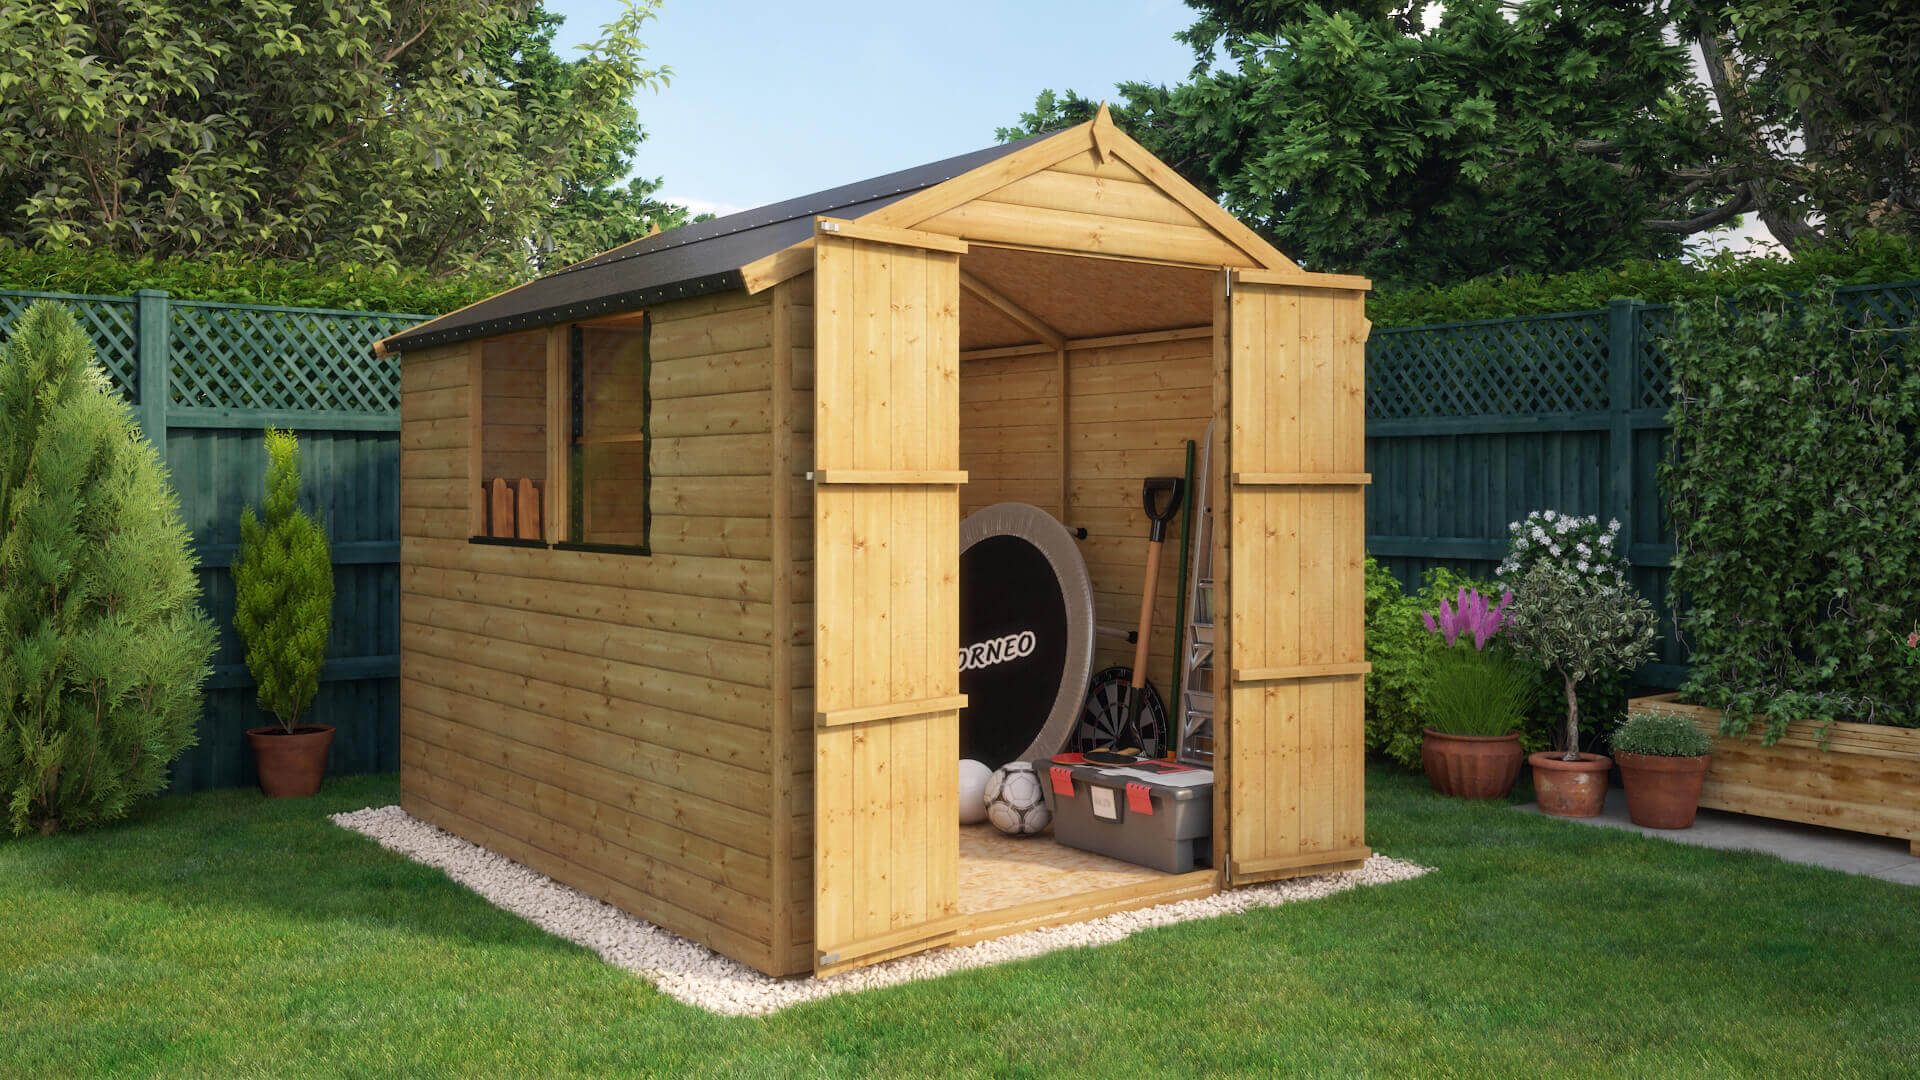 Loglap Windowed Garden Shed